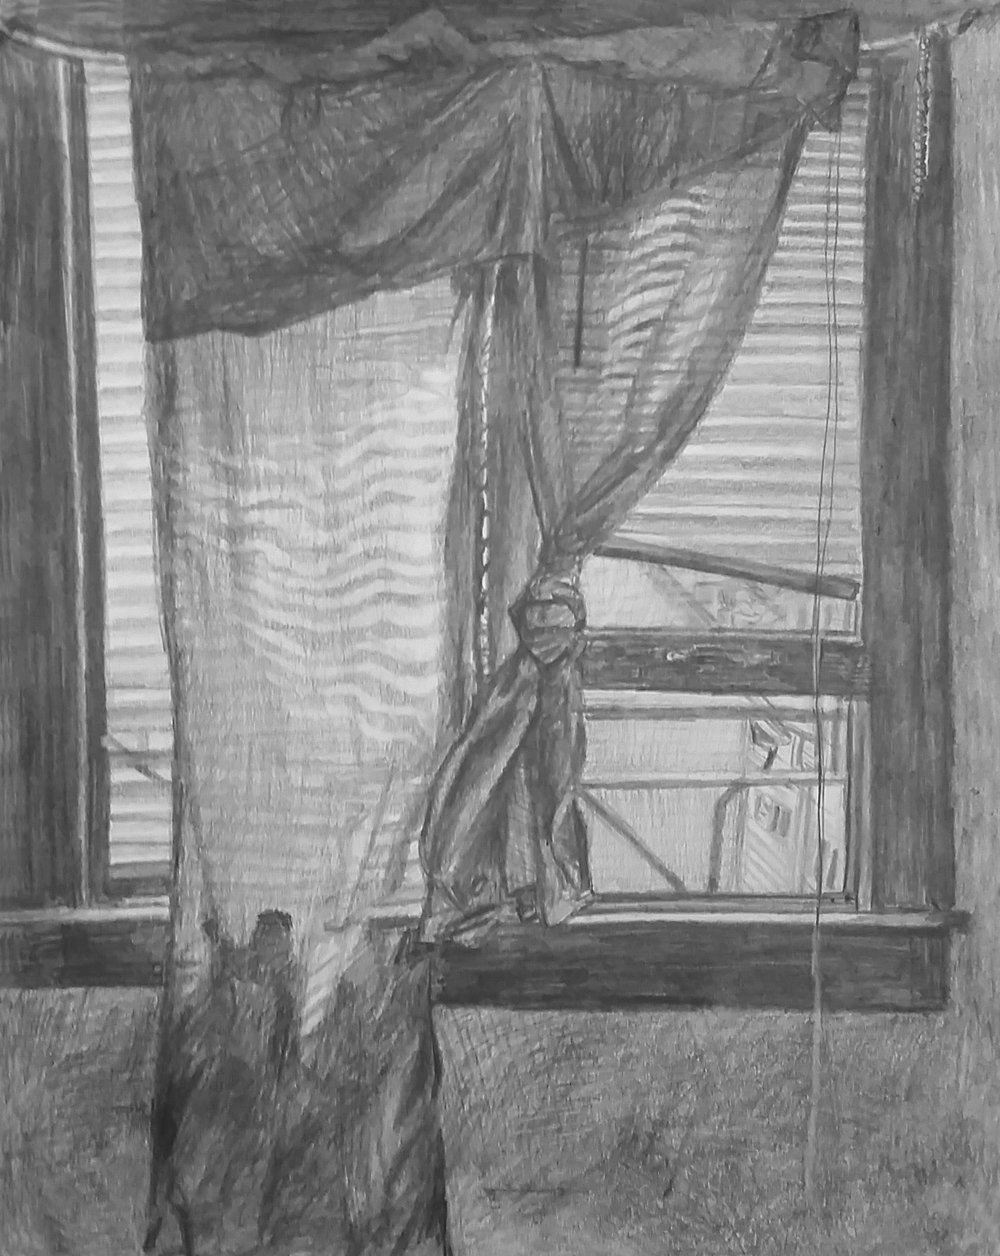 Bedroom Window 3